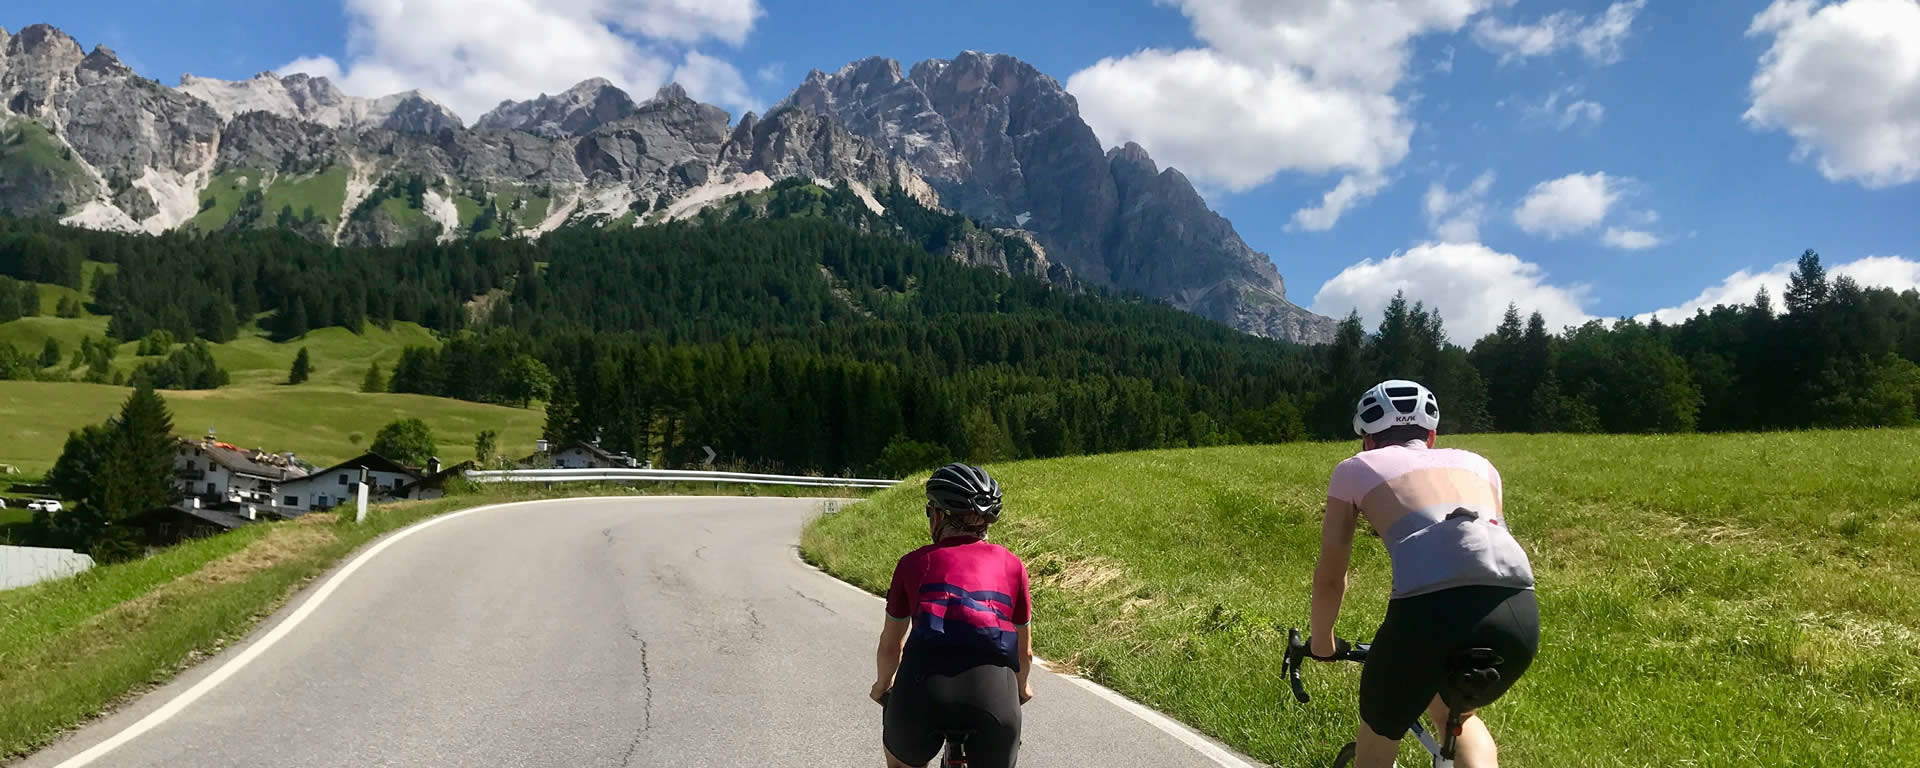 Climbing in the Dolomites above Cortina